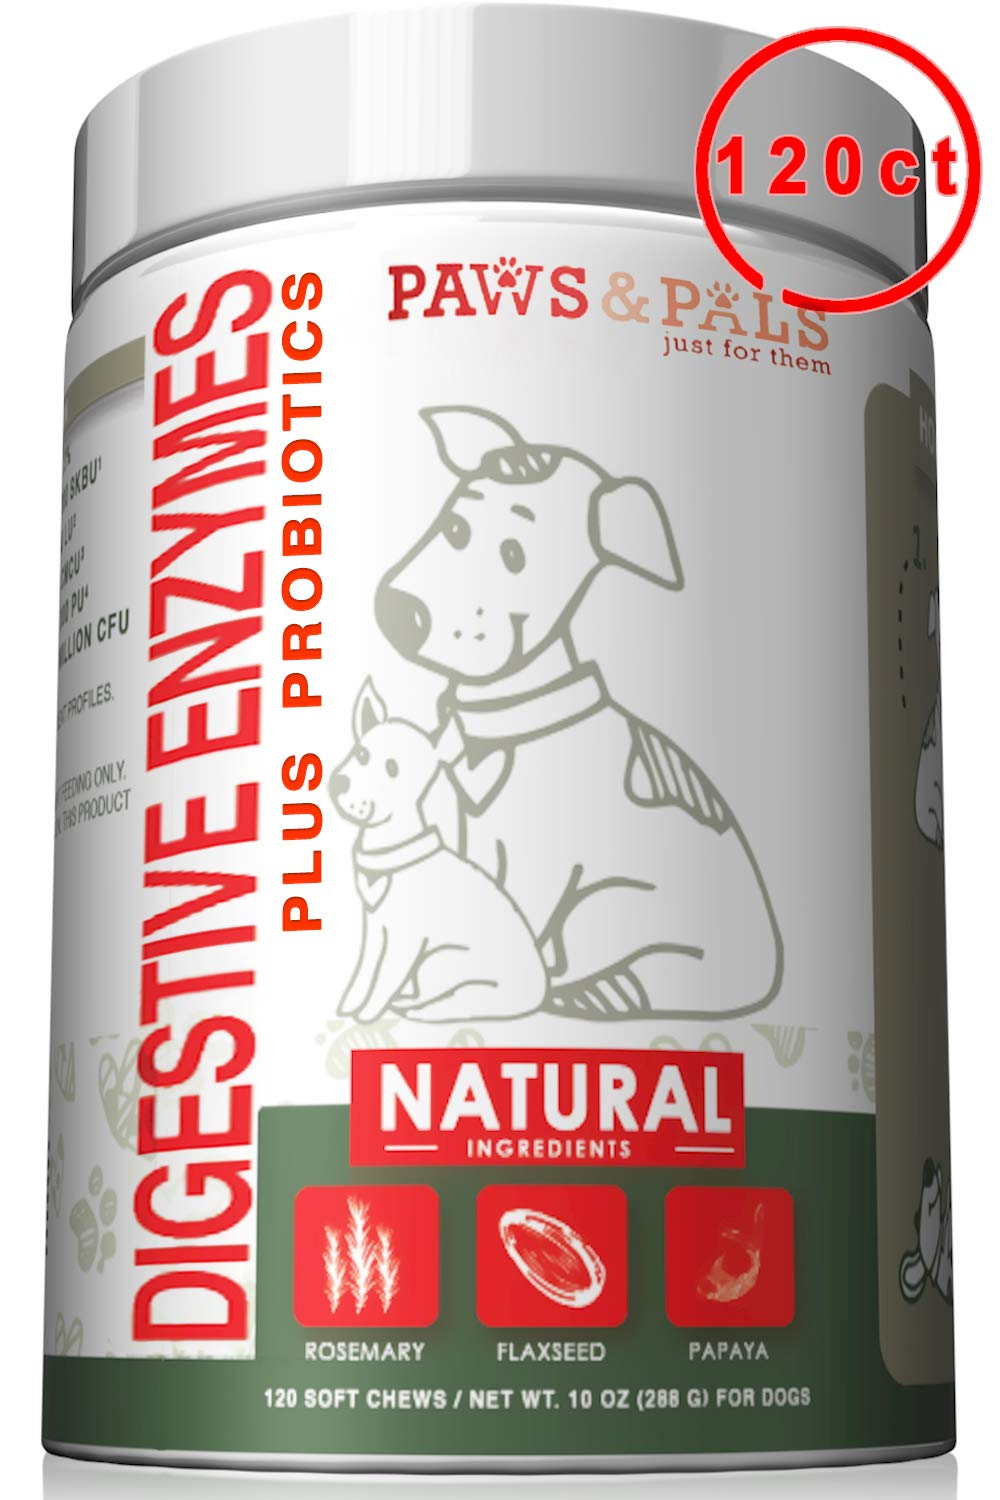 Dog Digestive Enzymes Plus Probiotics Soft Chew Vitamins with Rosemary, Flax Seed, Papaya - 120 Count by Paws & Pals